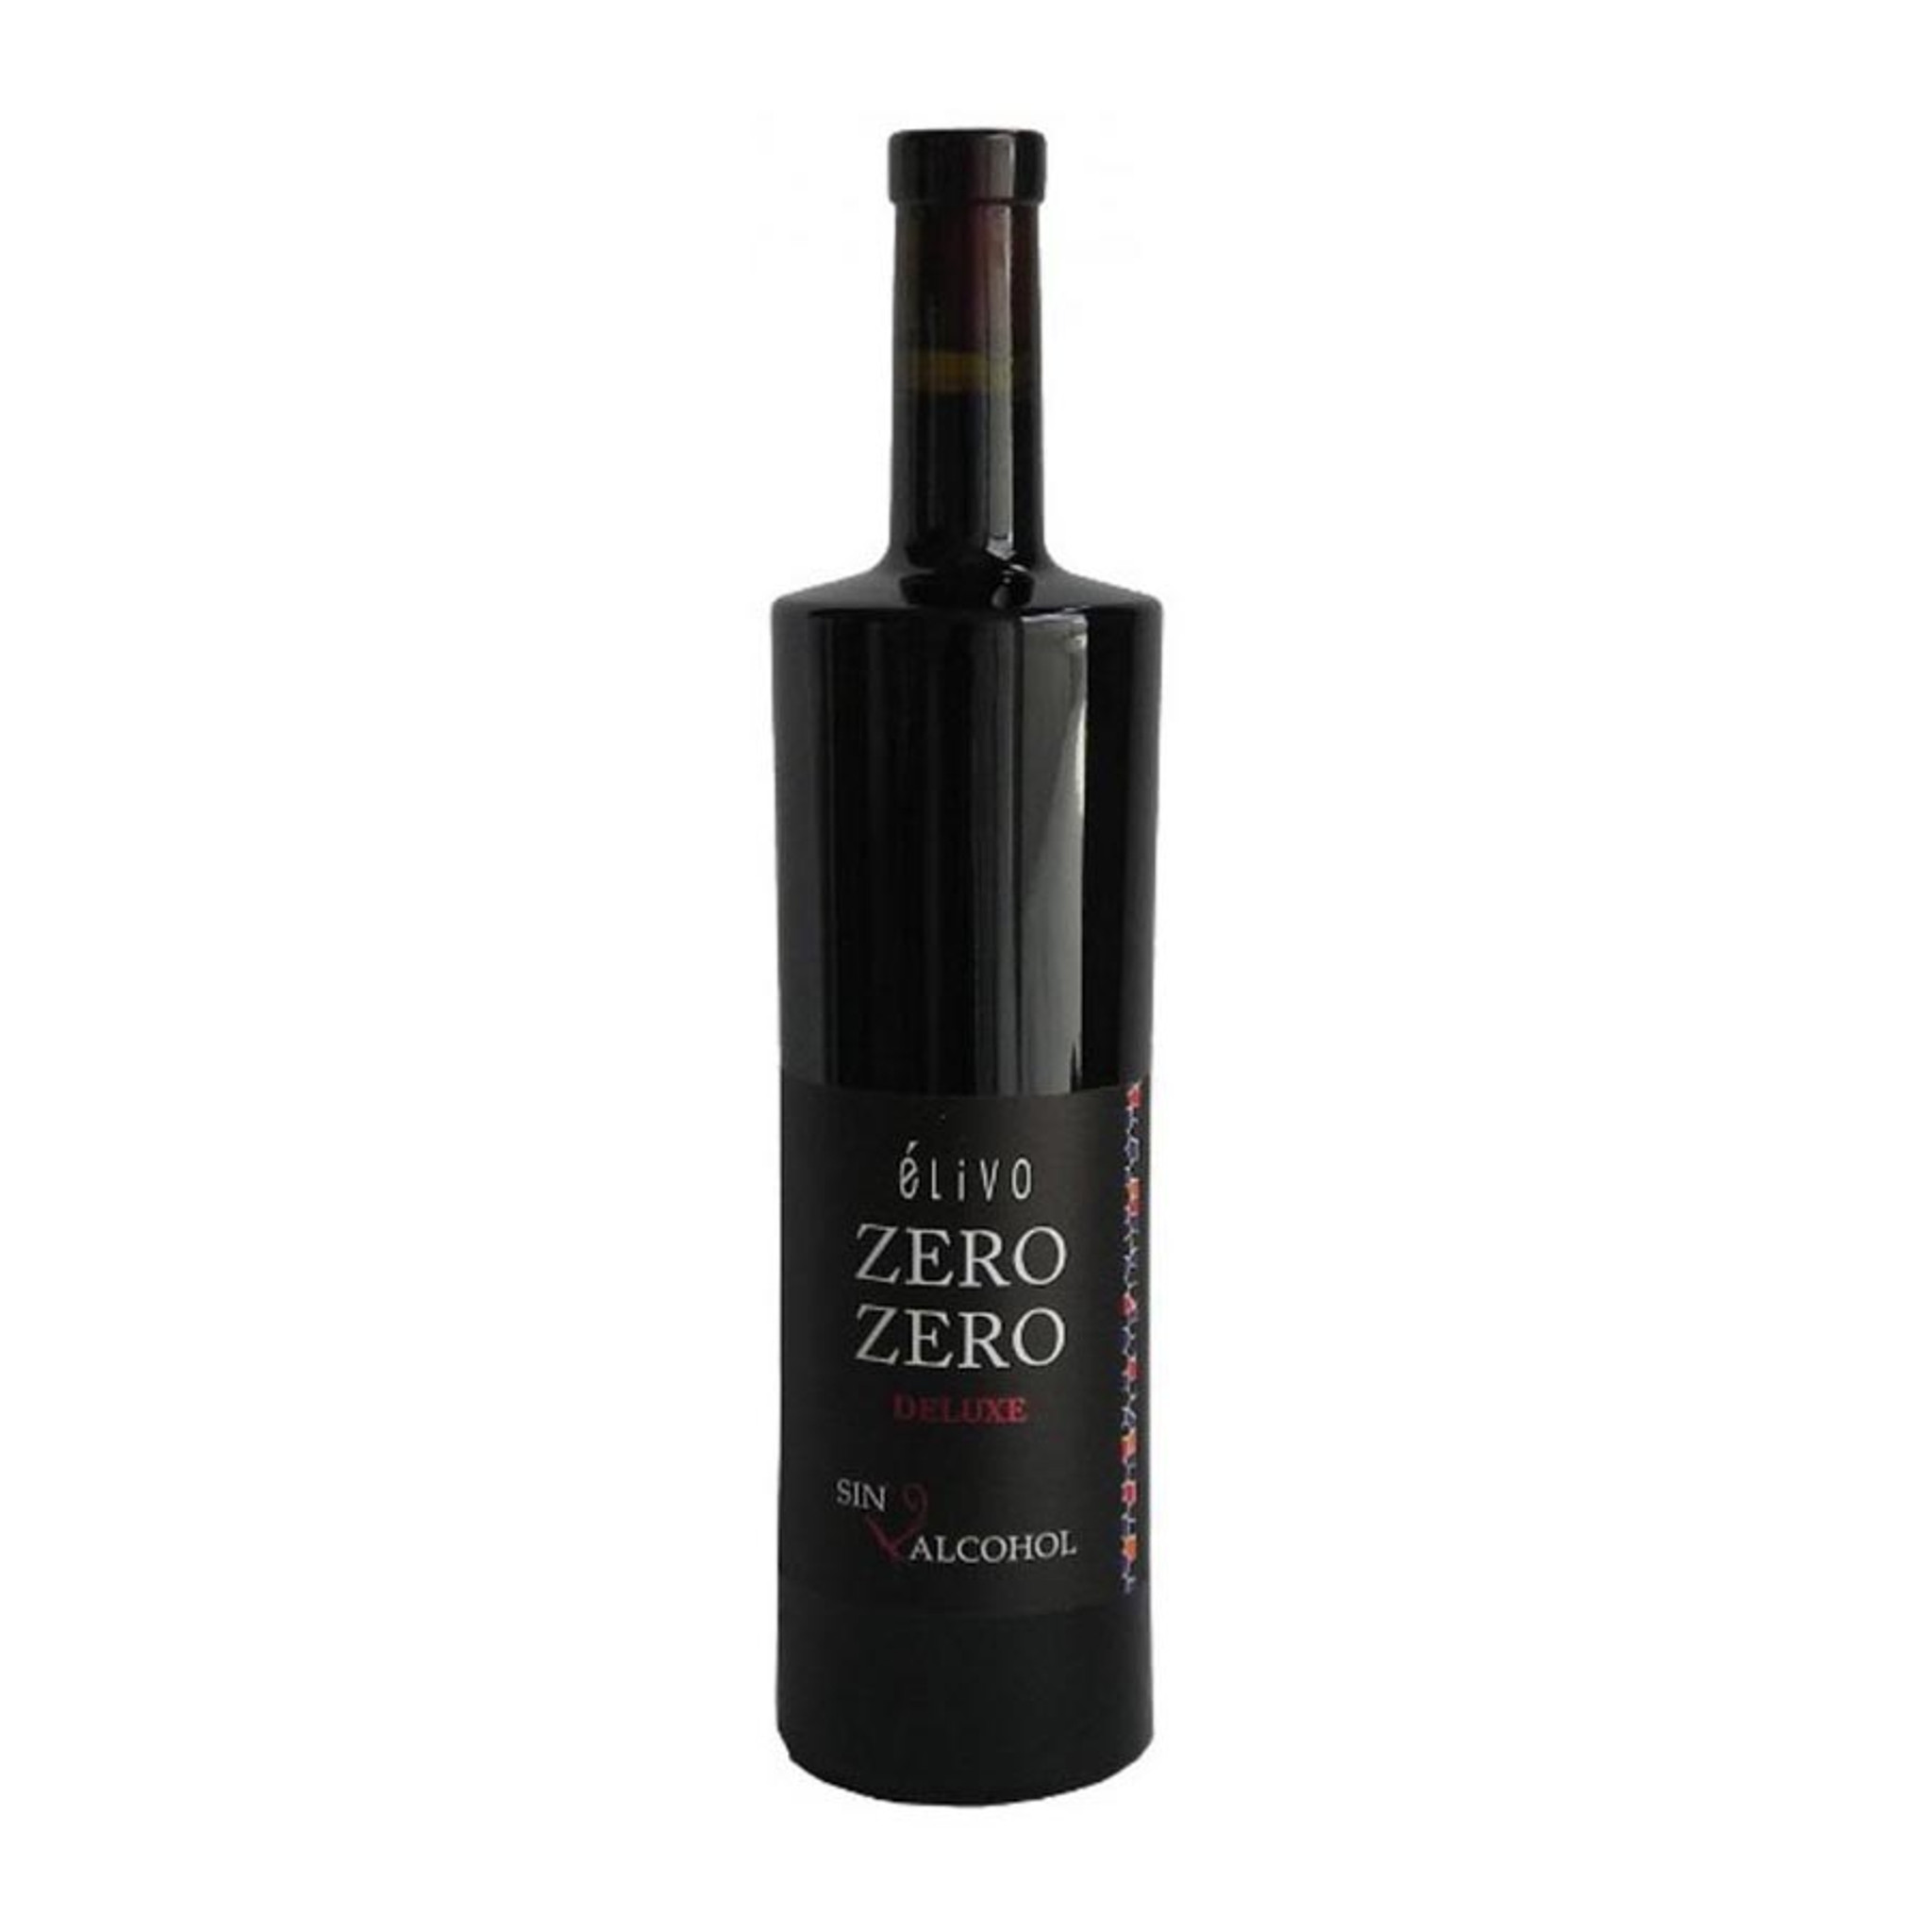 Elivo Zero Zero Deluxe Alcohol Free Red Wine